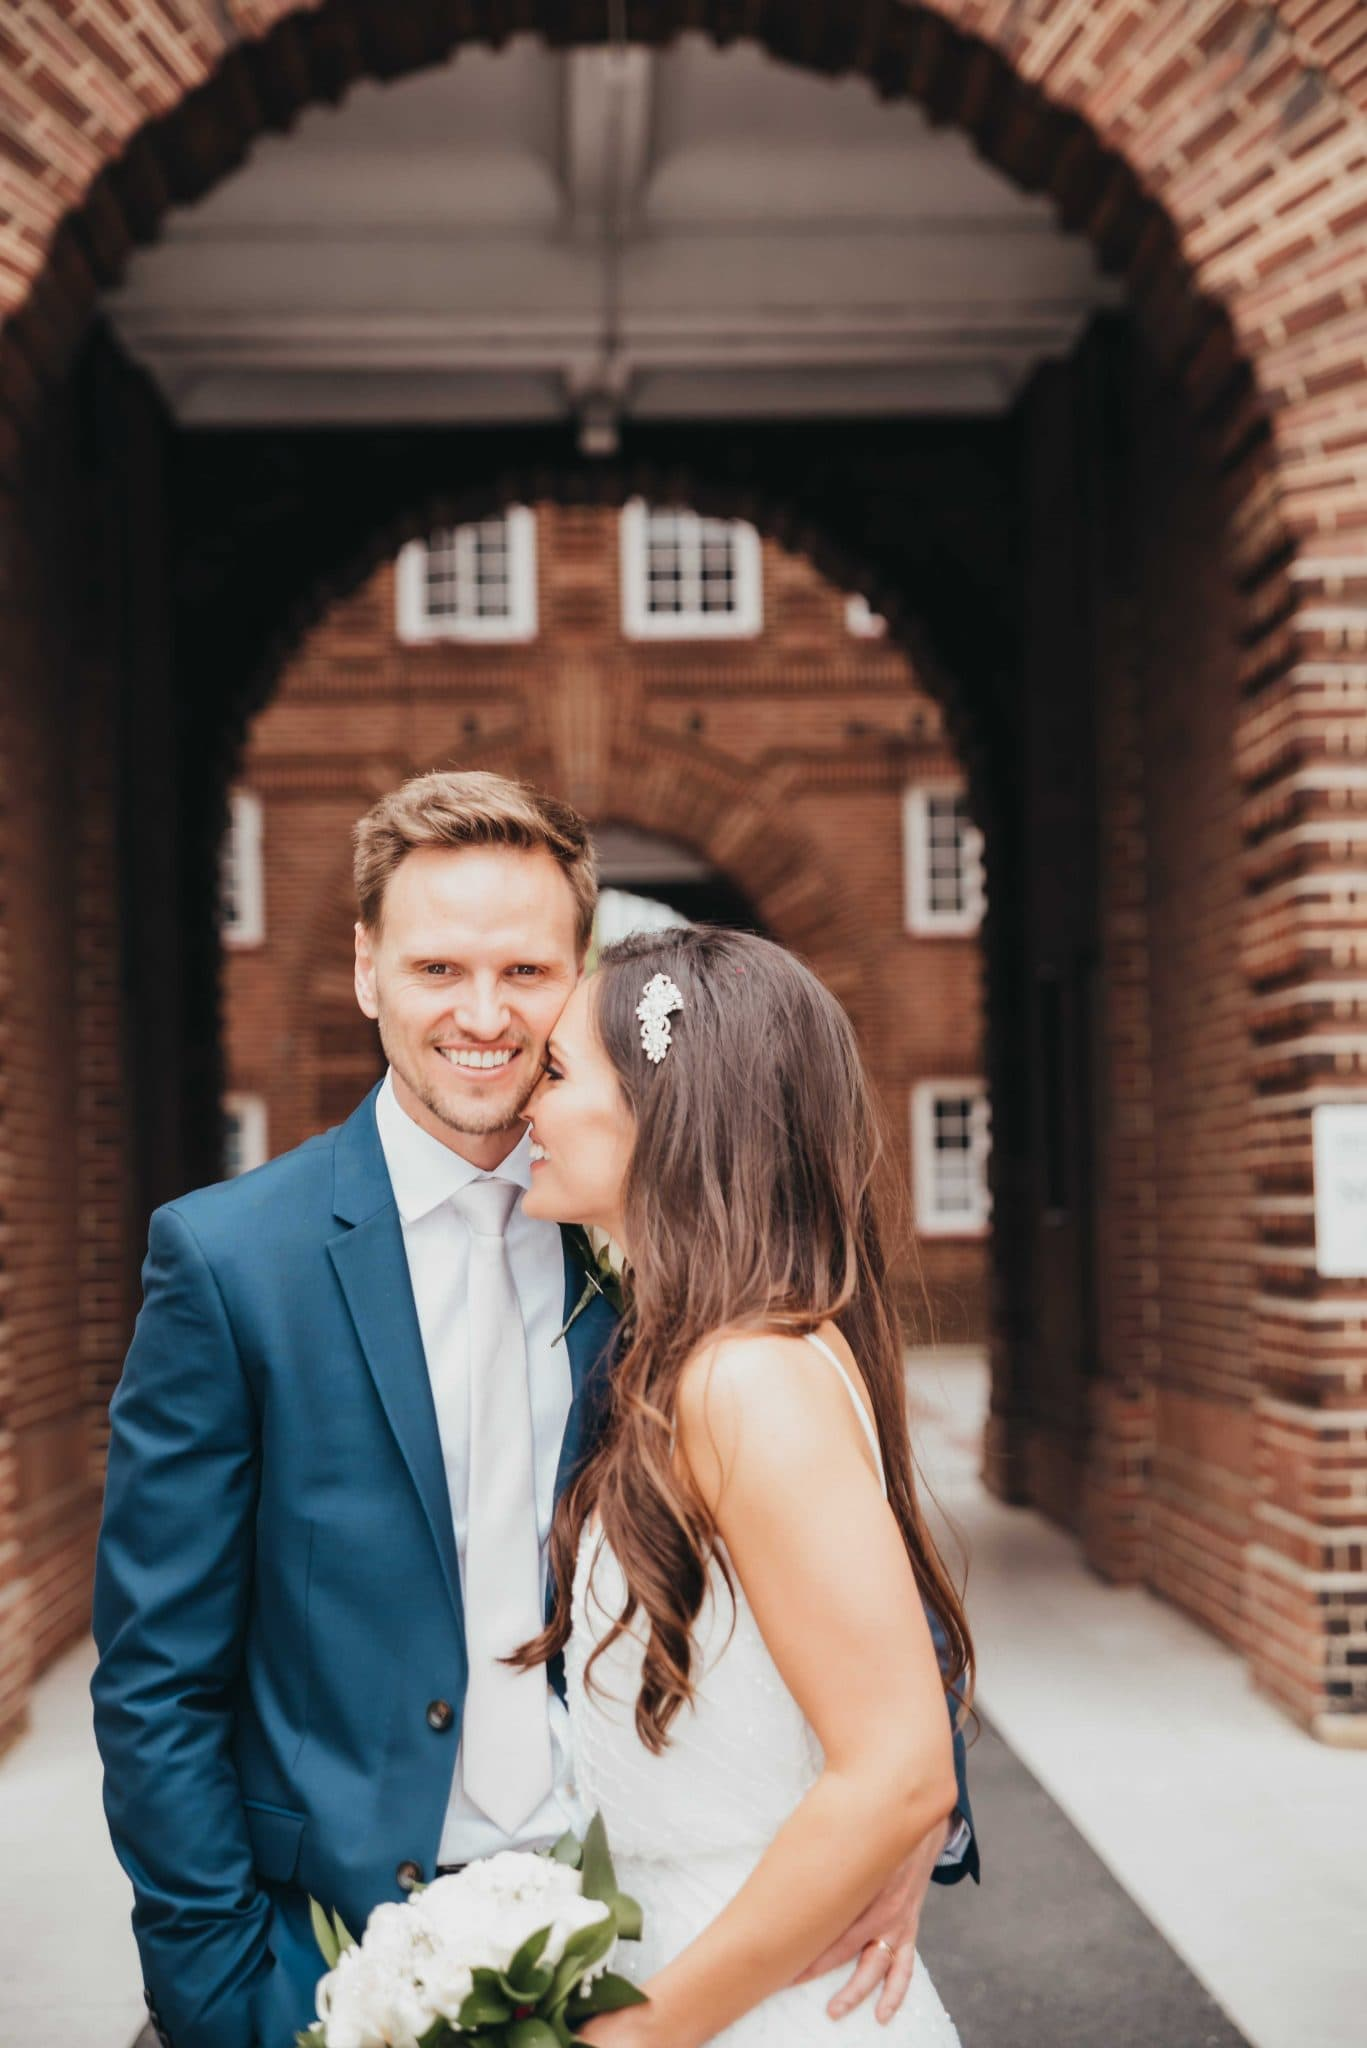 Married couple at the registry office, Ivy restaurant london